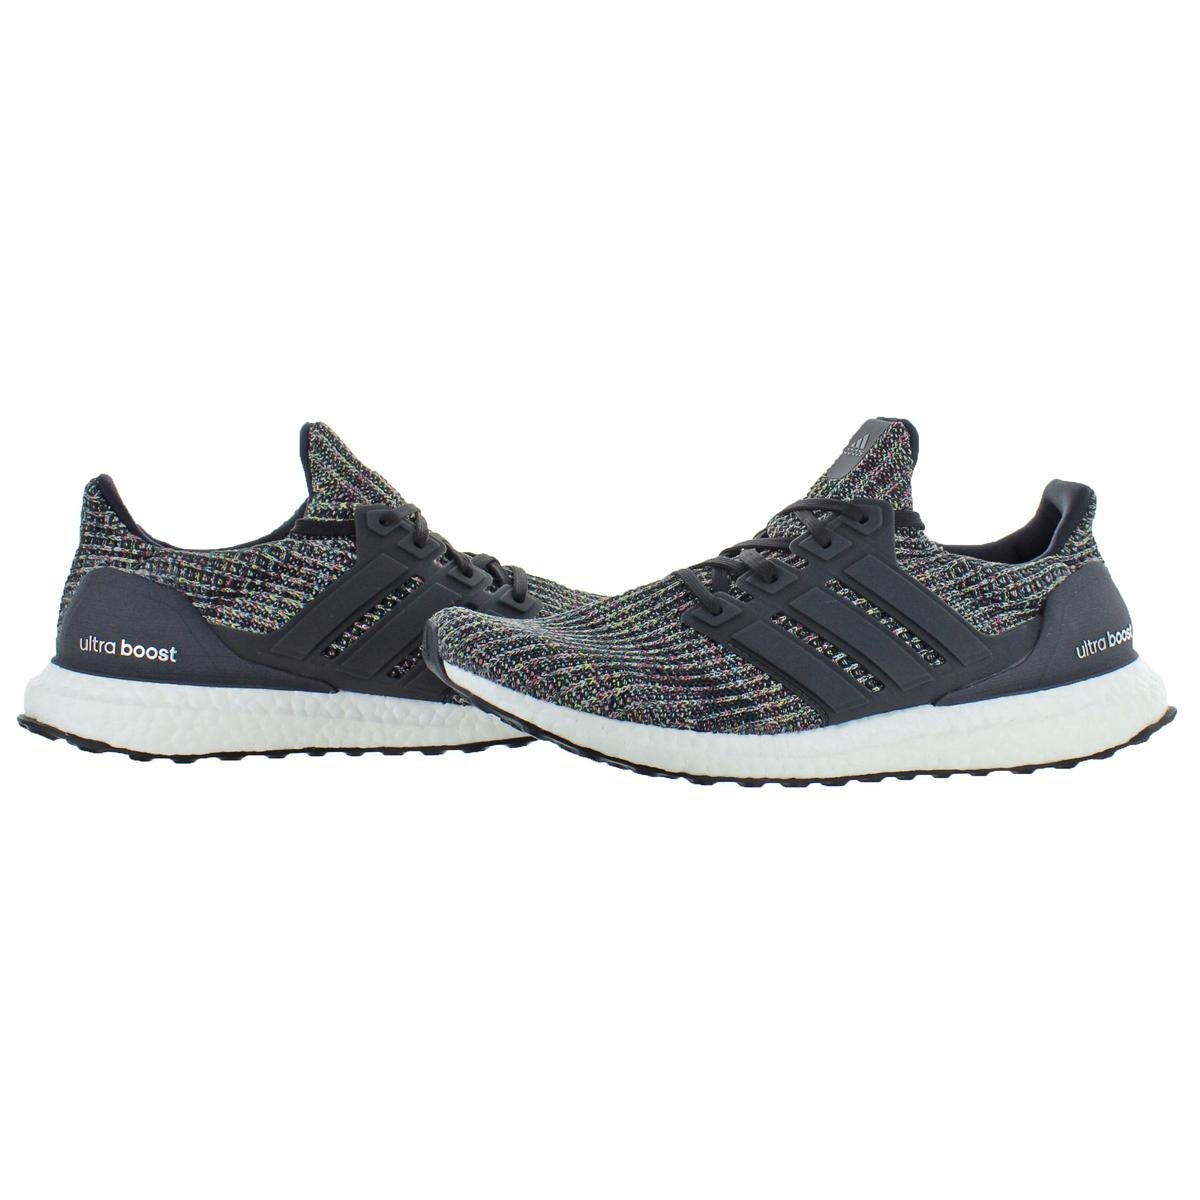 online retailer d11fa 5927a Adidas Mens Ultraboost Running Shoes Primeknit Athletic